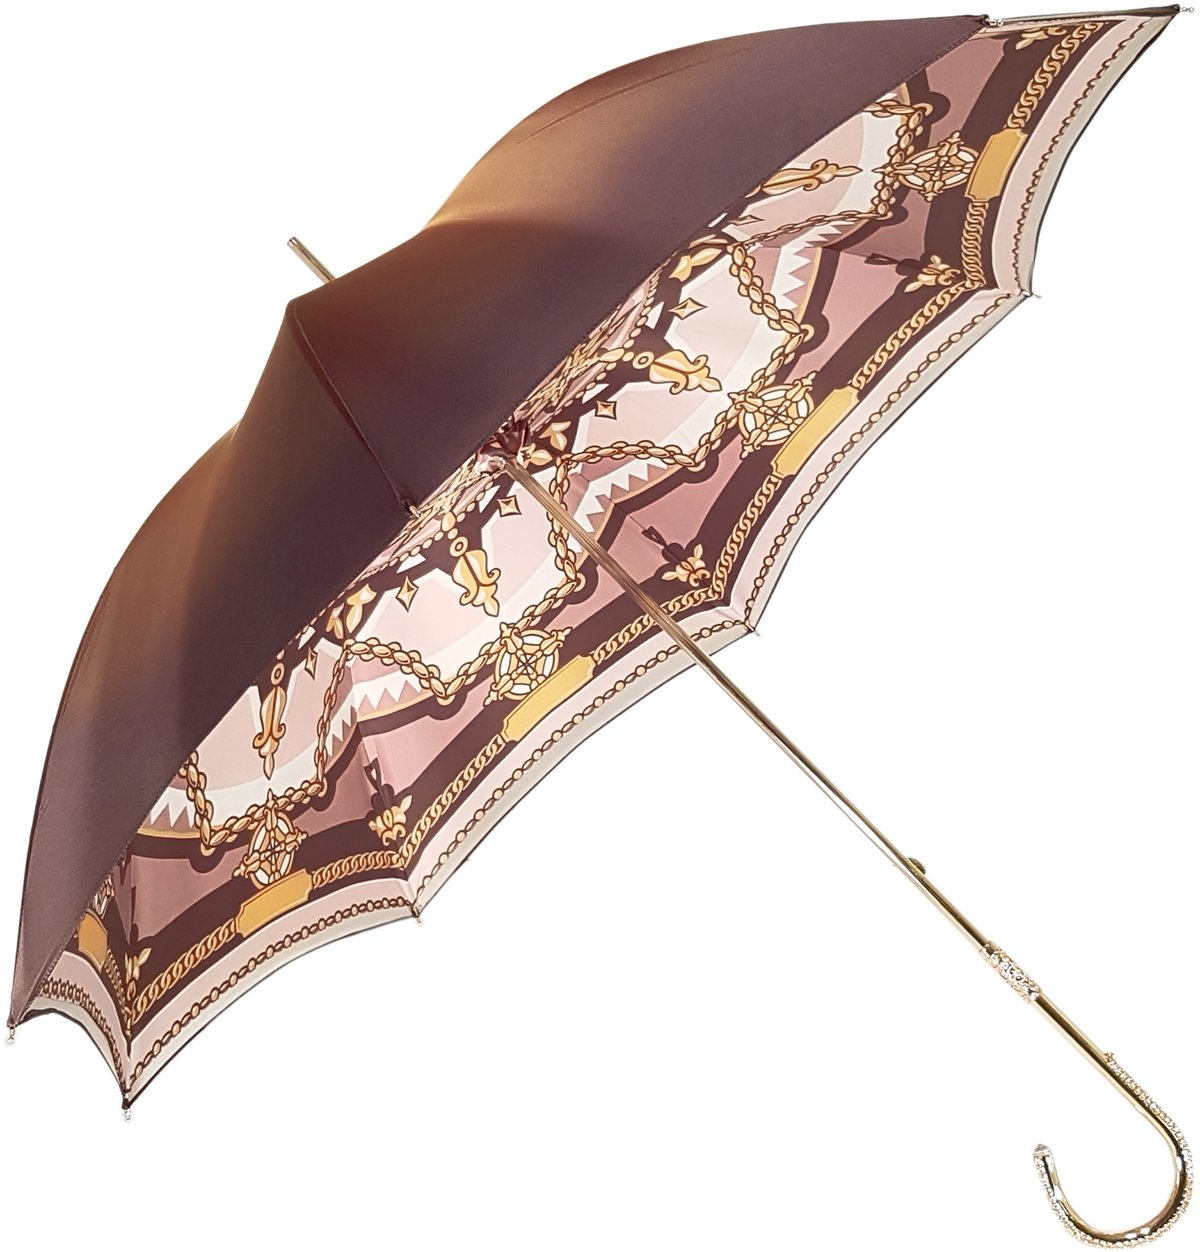 HIGH ITALIAN'S UMBRELLA